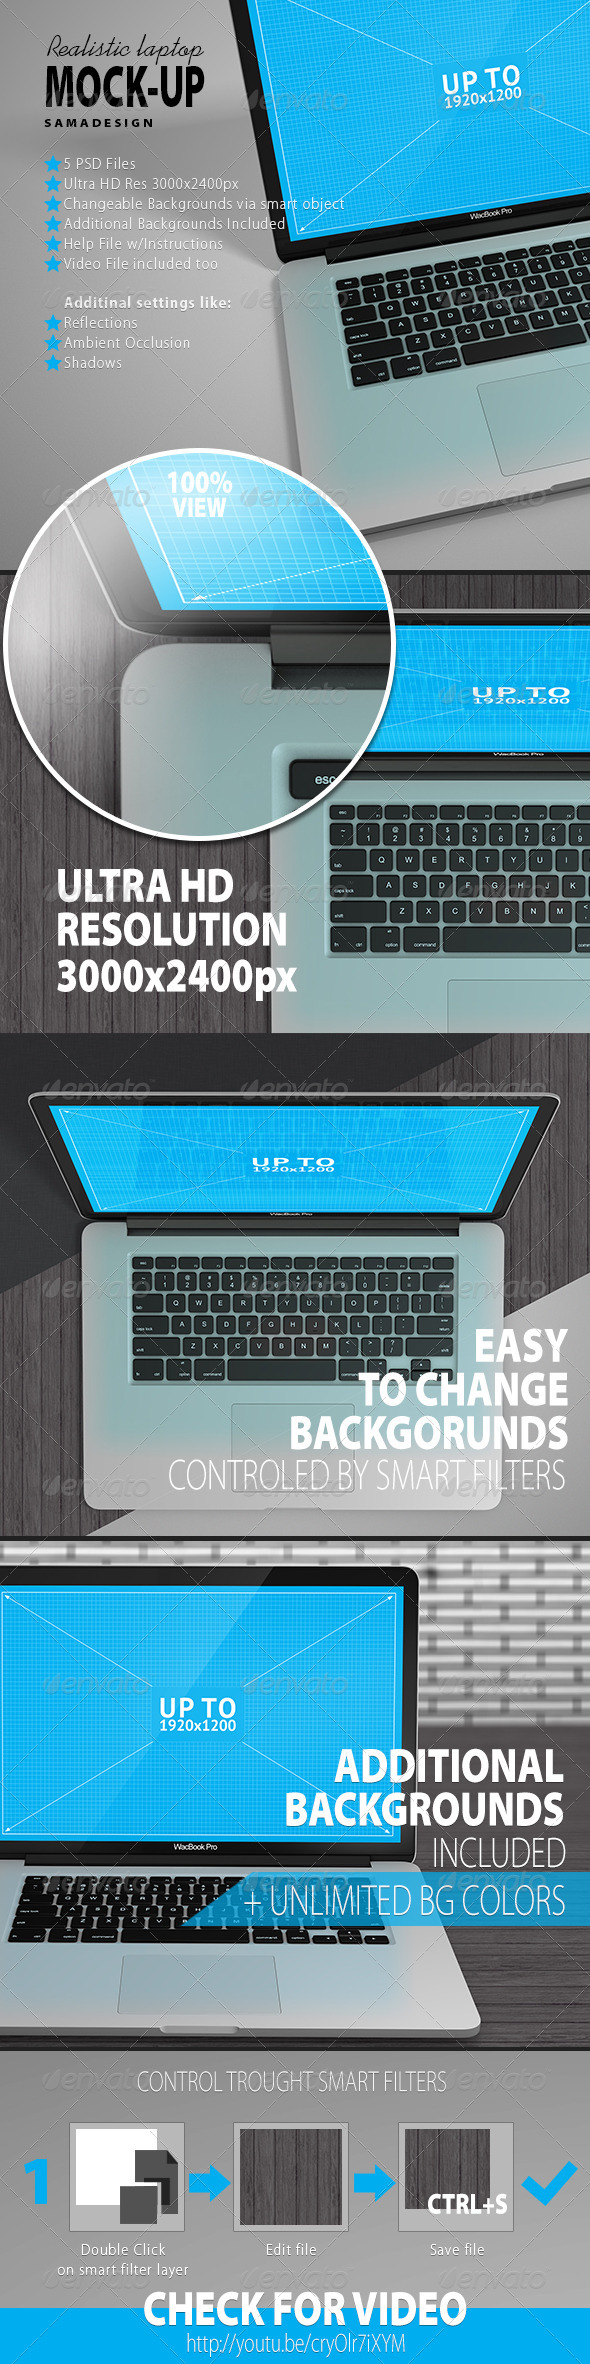 Realistic Laptop Mockup - Product Mock-Ups Graphics